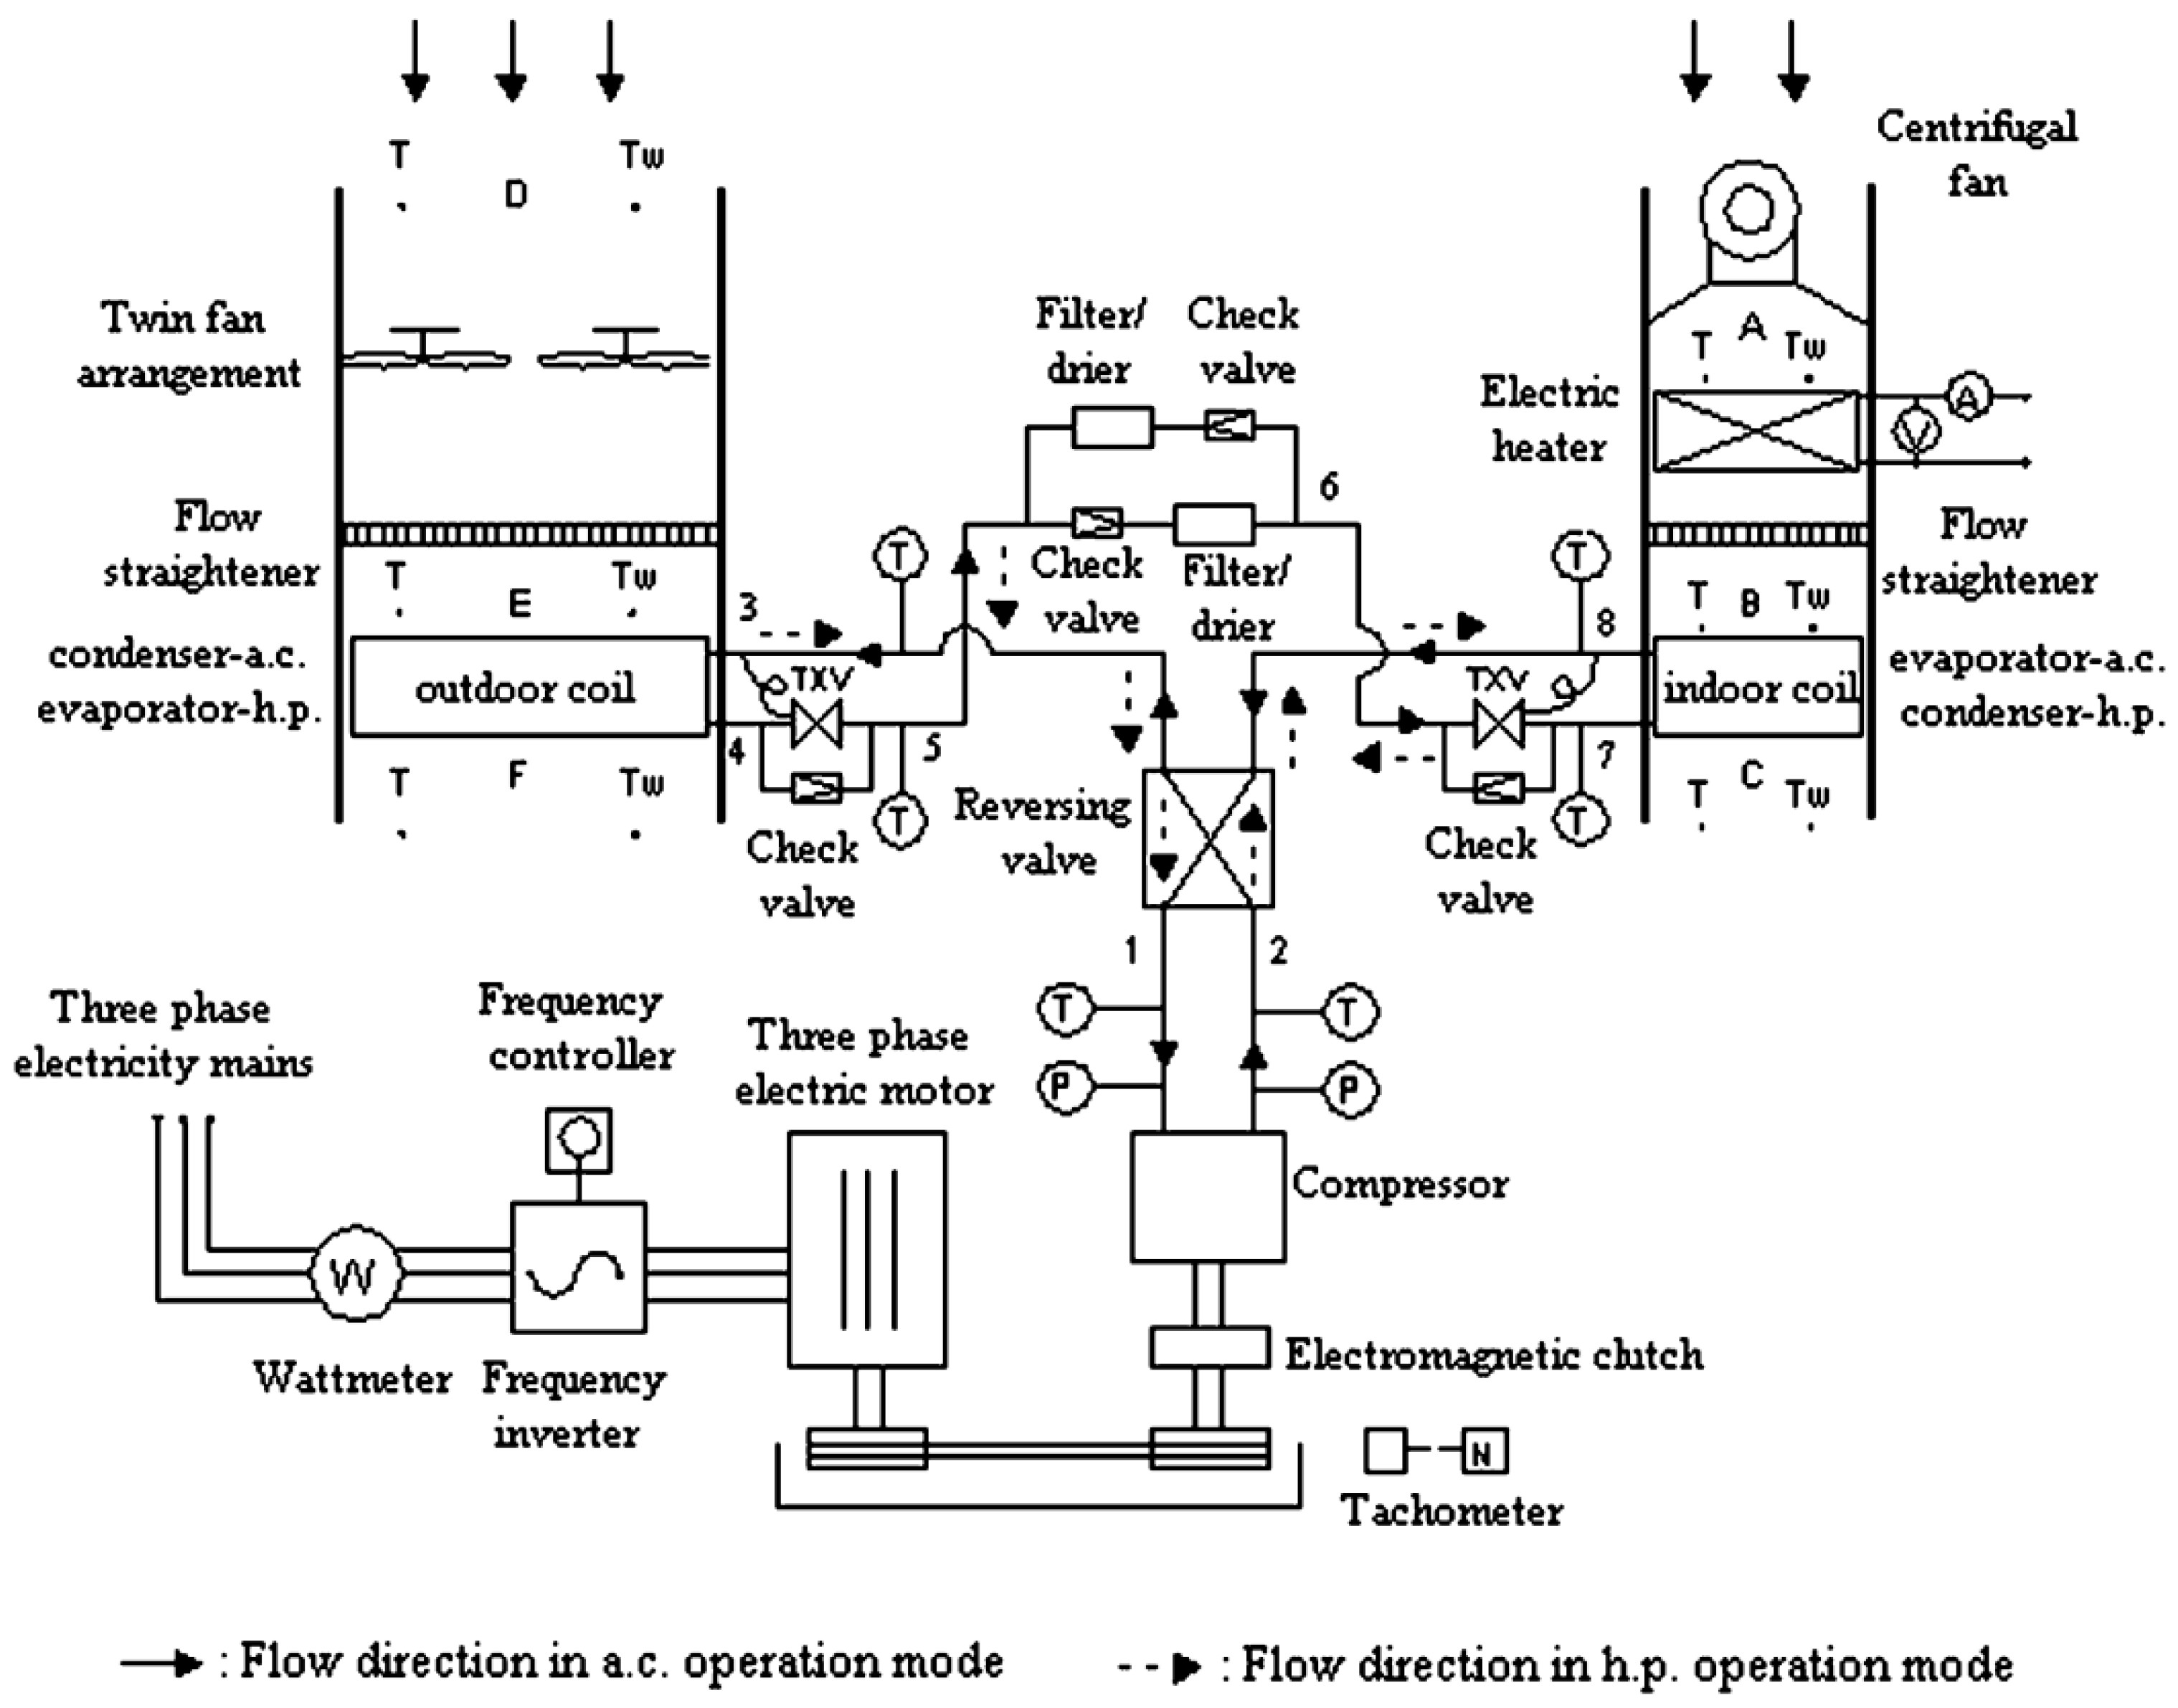 Auto Air Conditioning System Diagram Energies Free Full Text Of Auto Air Conditioning System Diagram